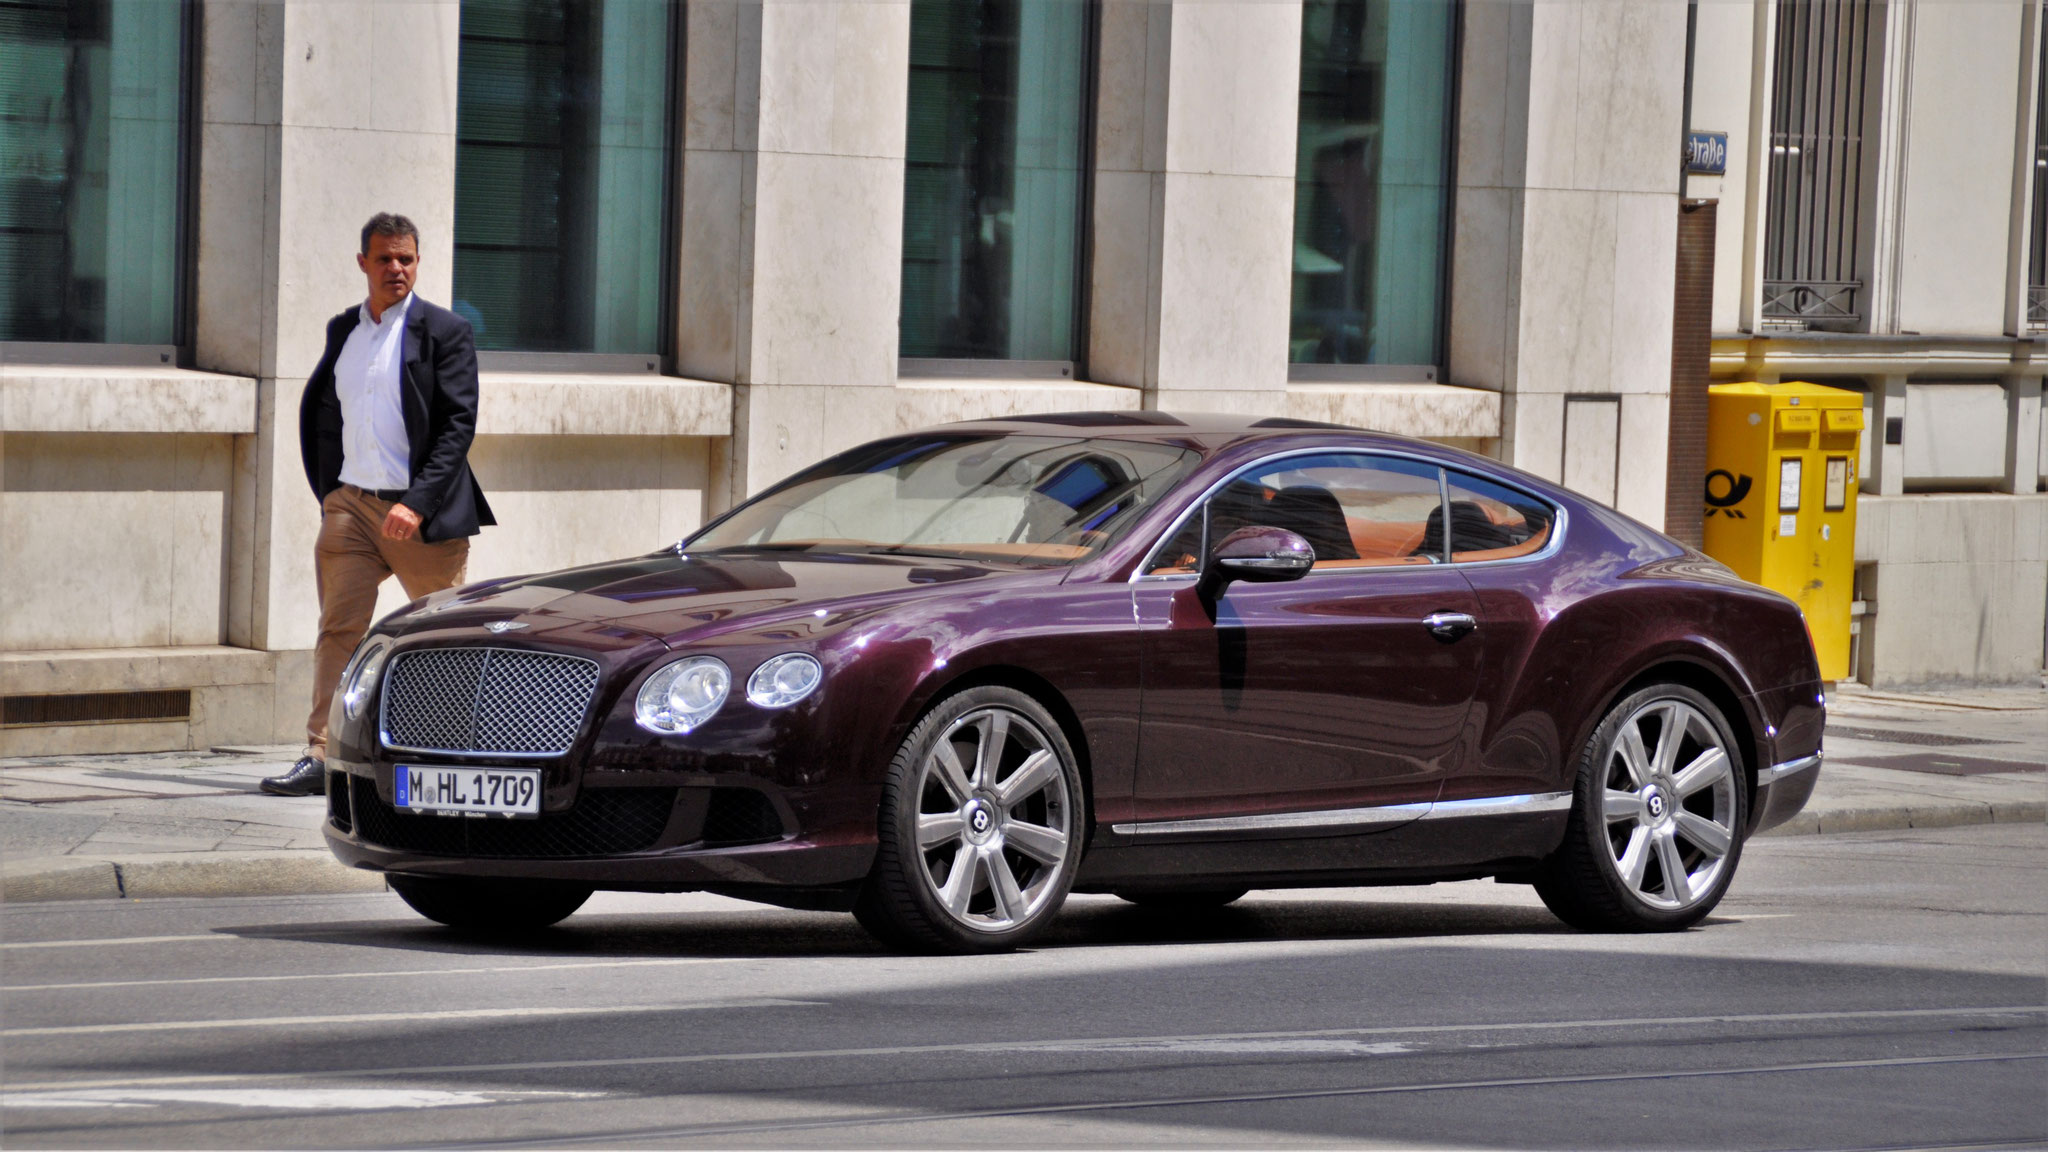 Bentley Continental GT - M-HL-1709